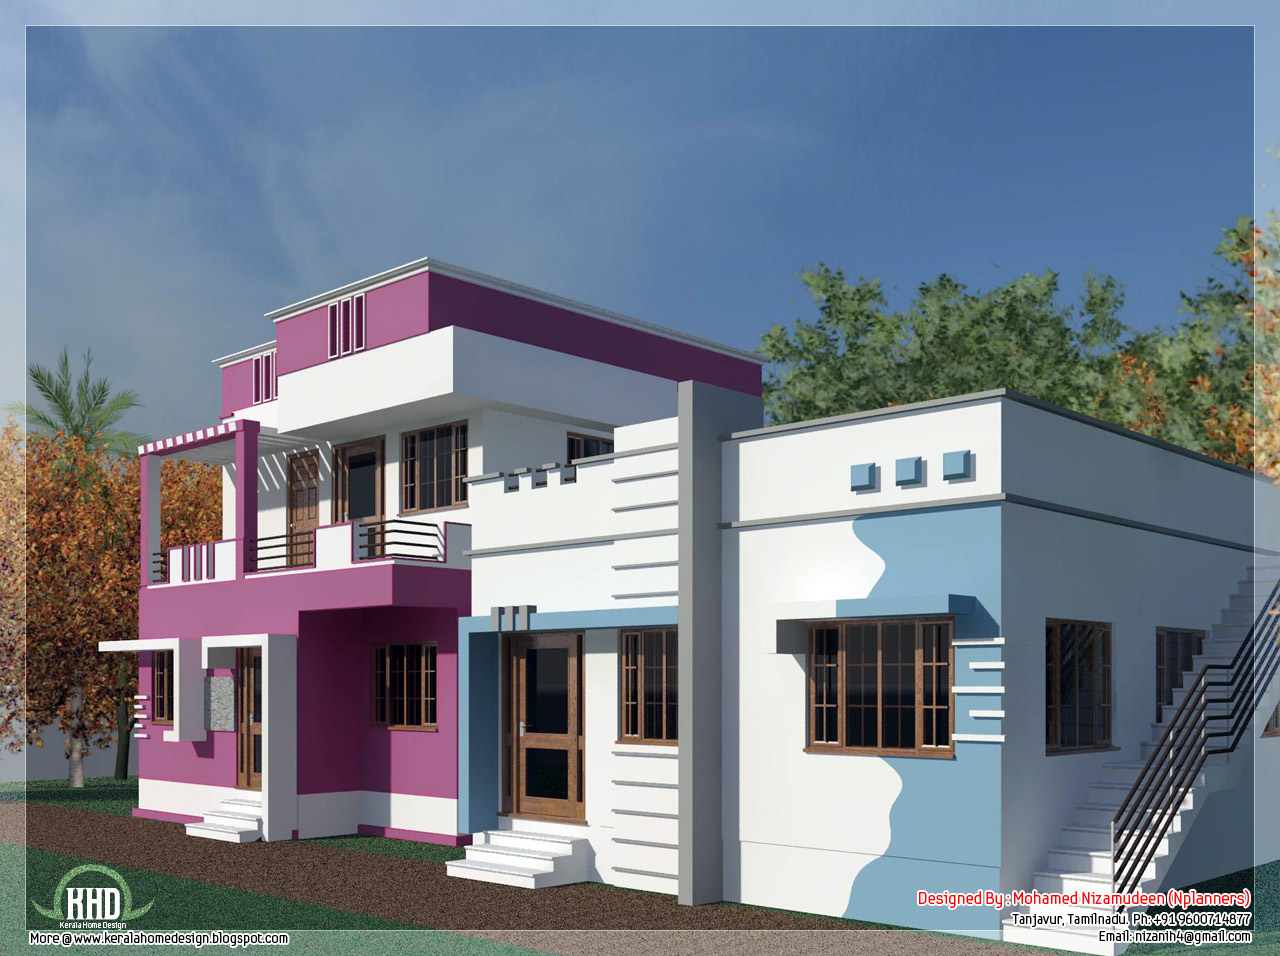 Tamilnadu model home design in 3000 kerala home for Latest model house design